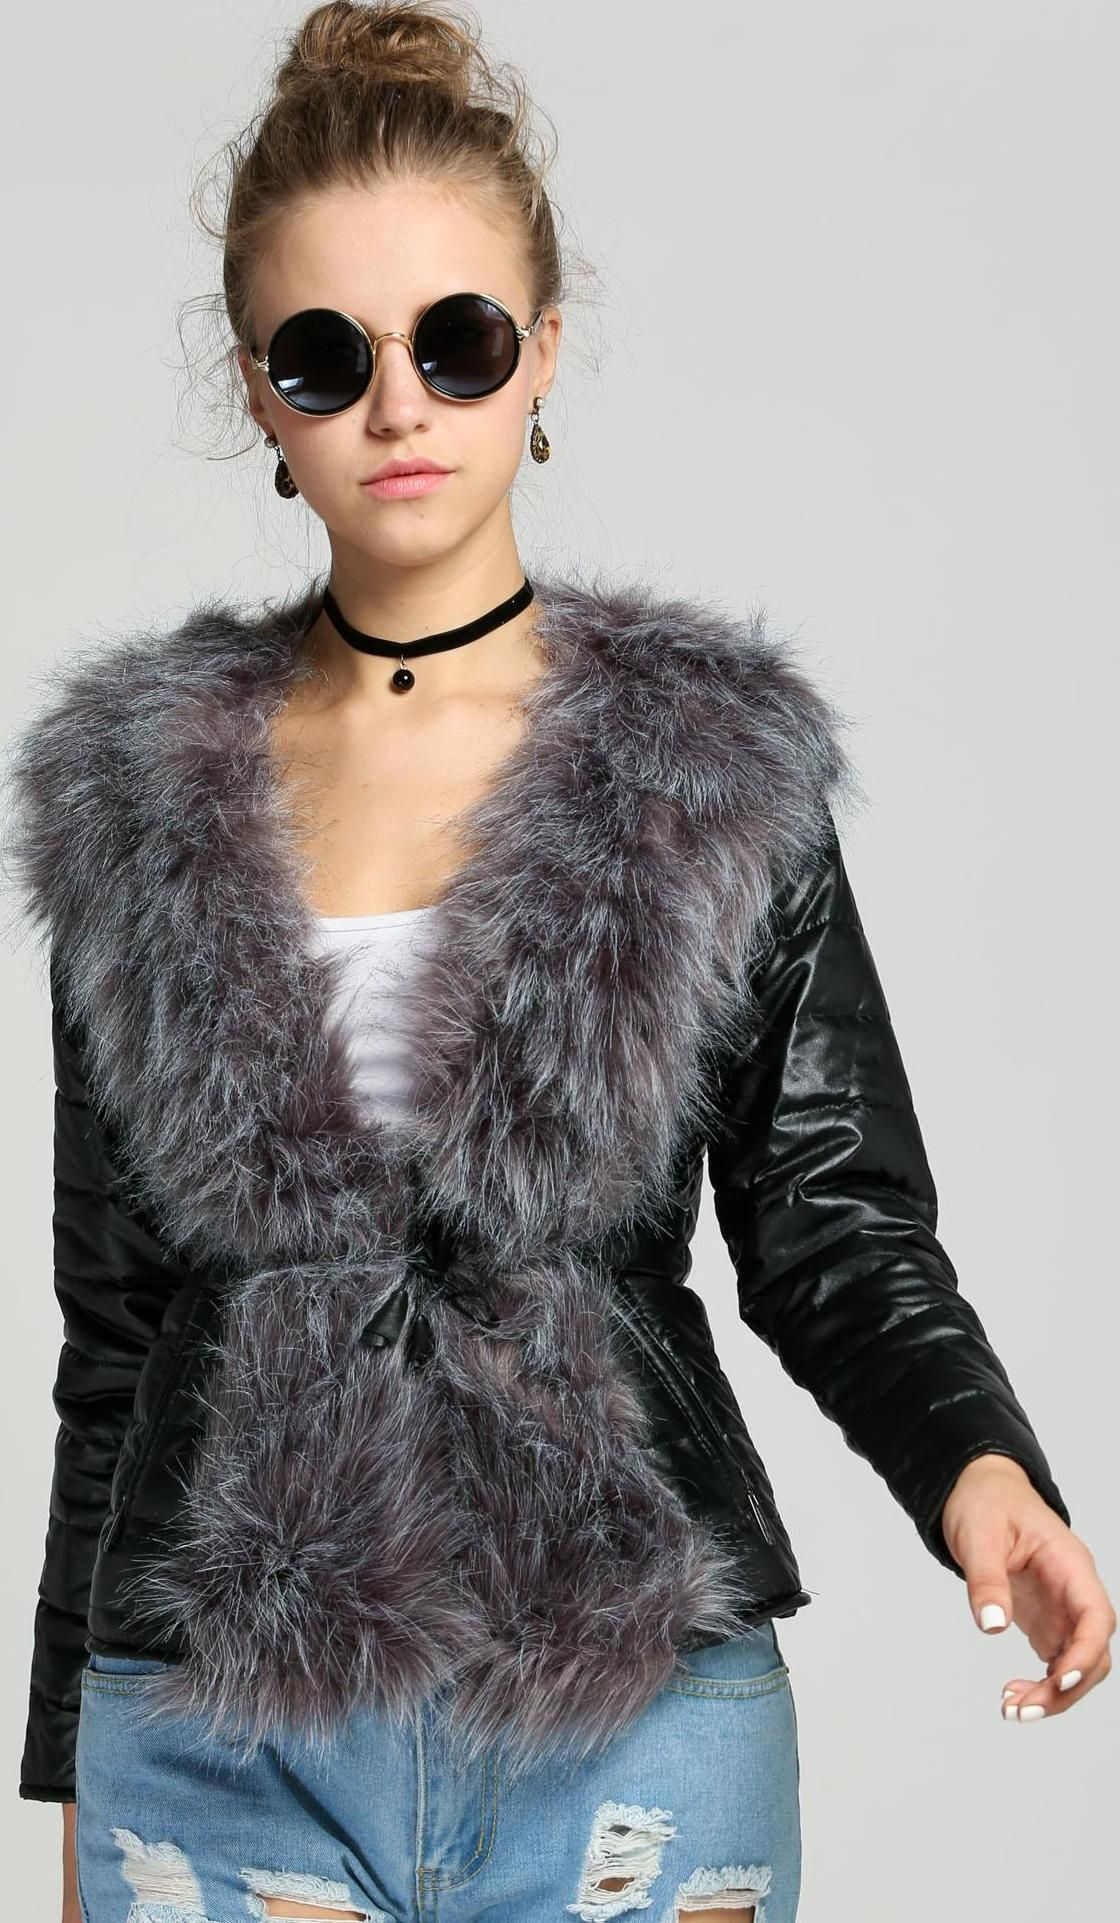 Black Faux Fur Leather Long Sleeve Warm Coat (With images